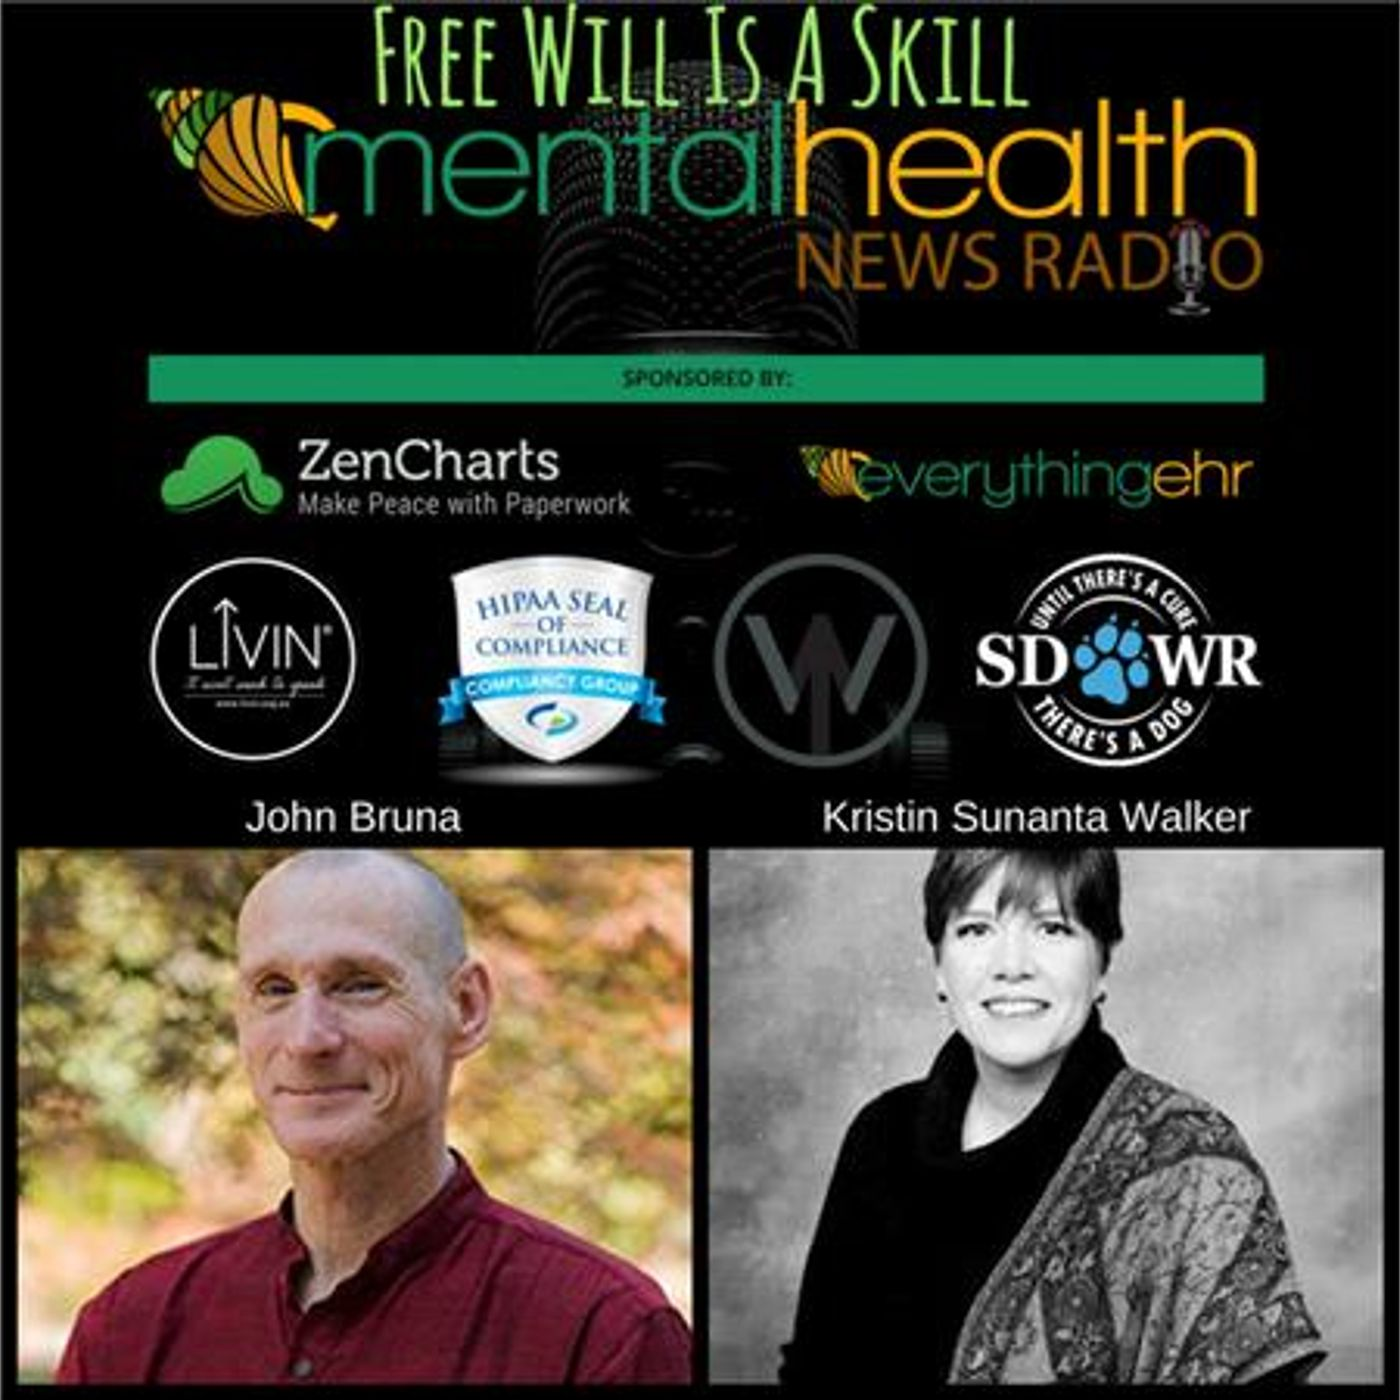 Mental Health News Radio - Free Will Is A Skill With Author and Mindfulness Teacher John Bruna